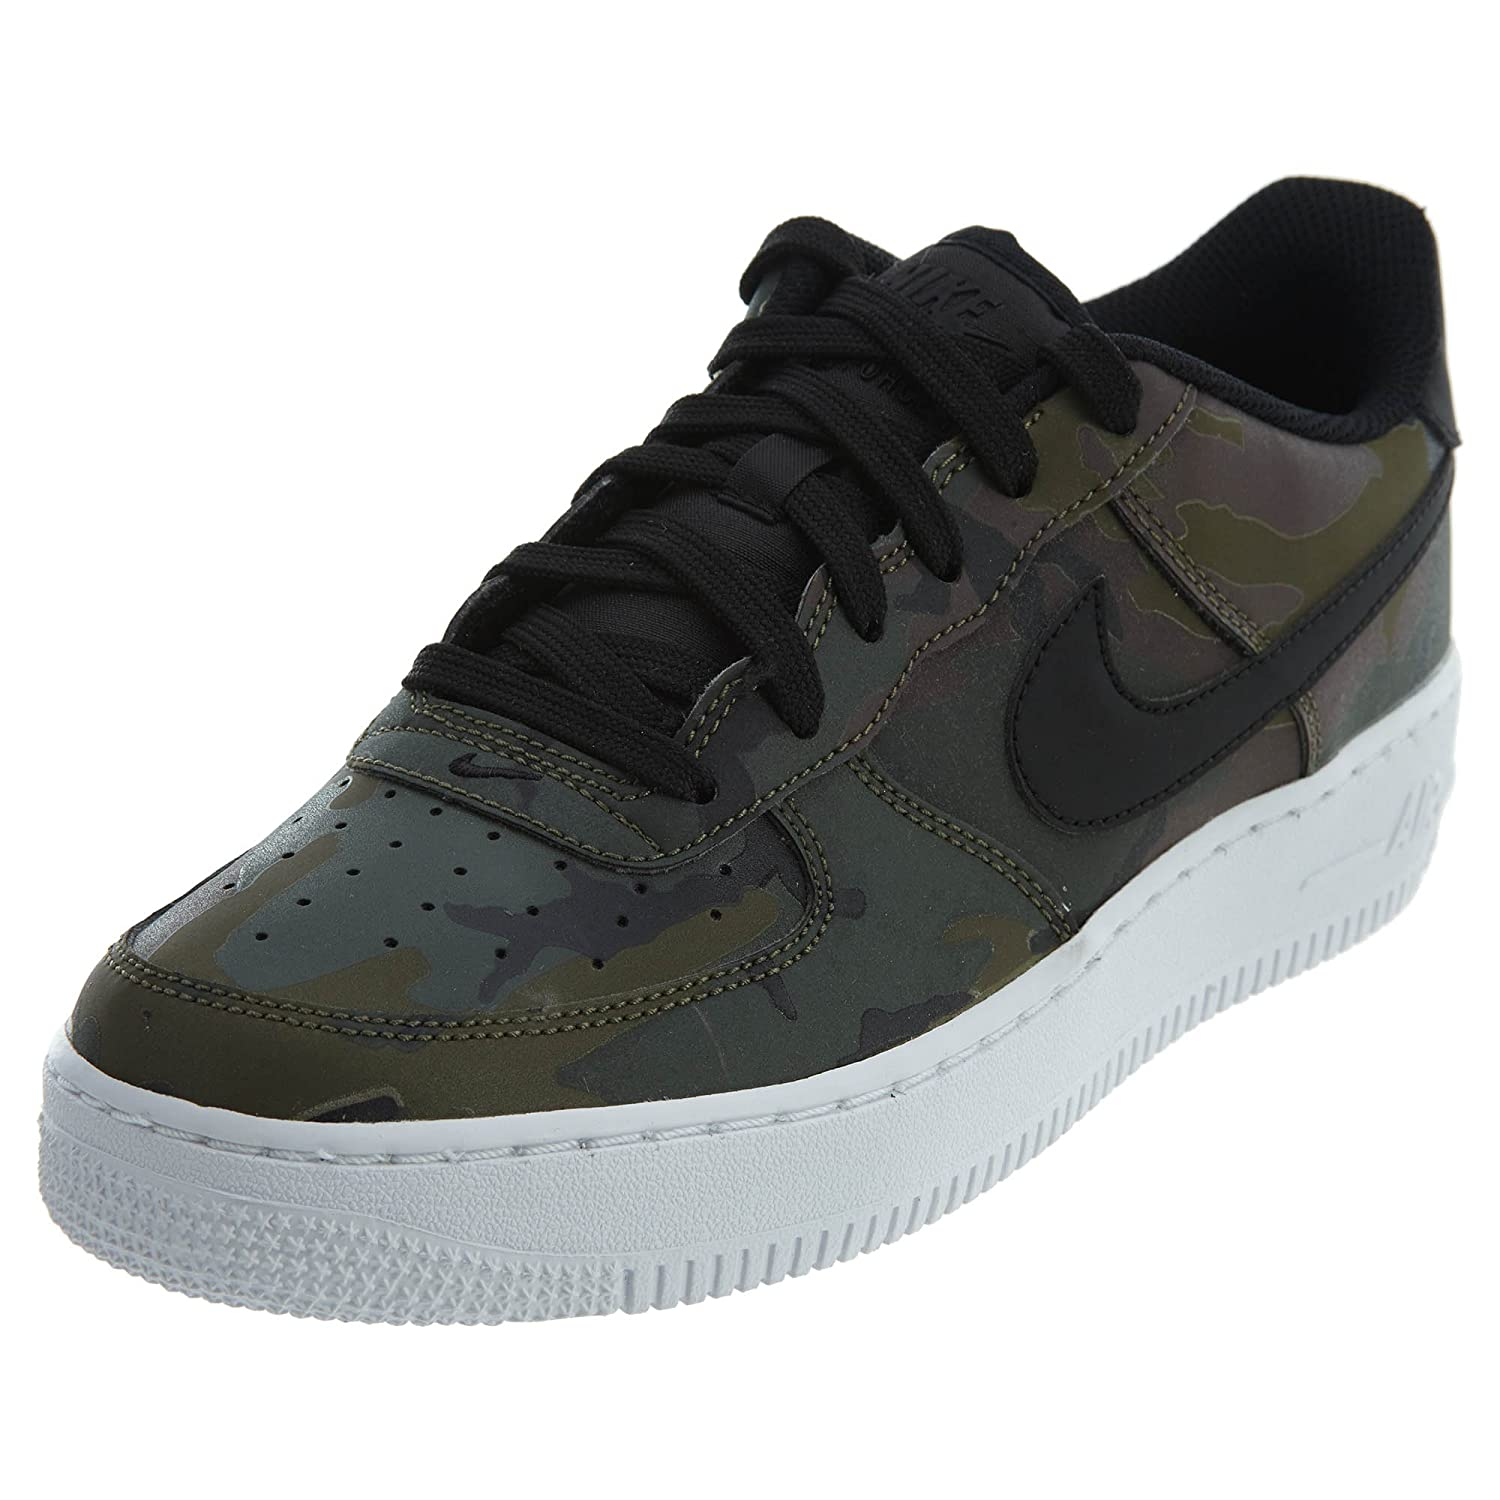 Nike Air Force 1 Lv8 Big Kids Style : 820438 Big Kids 820438 204 Size 4.5